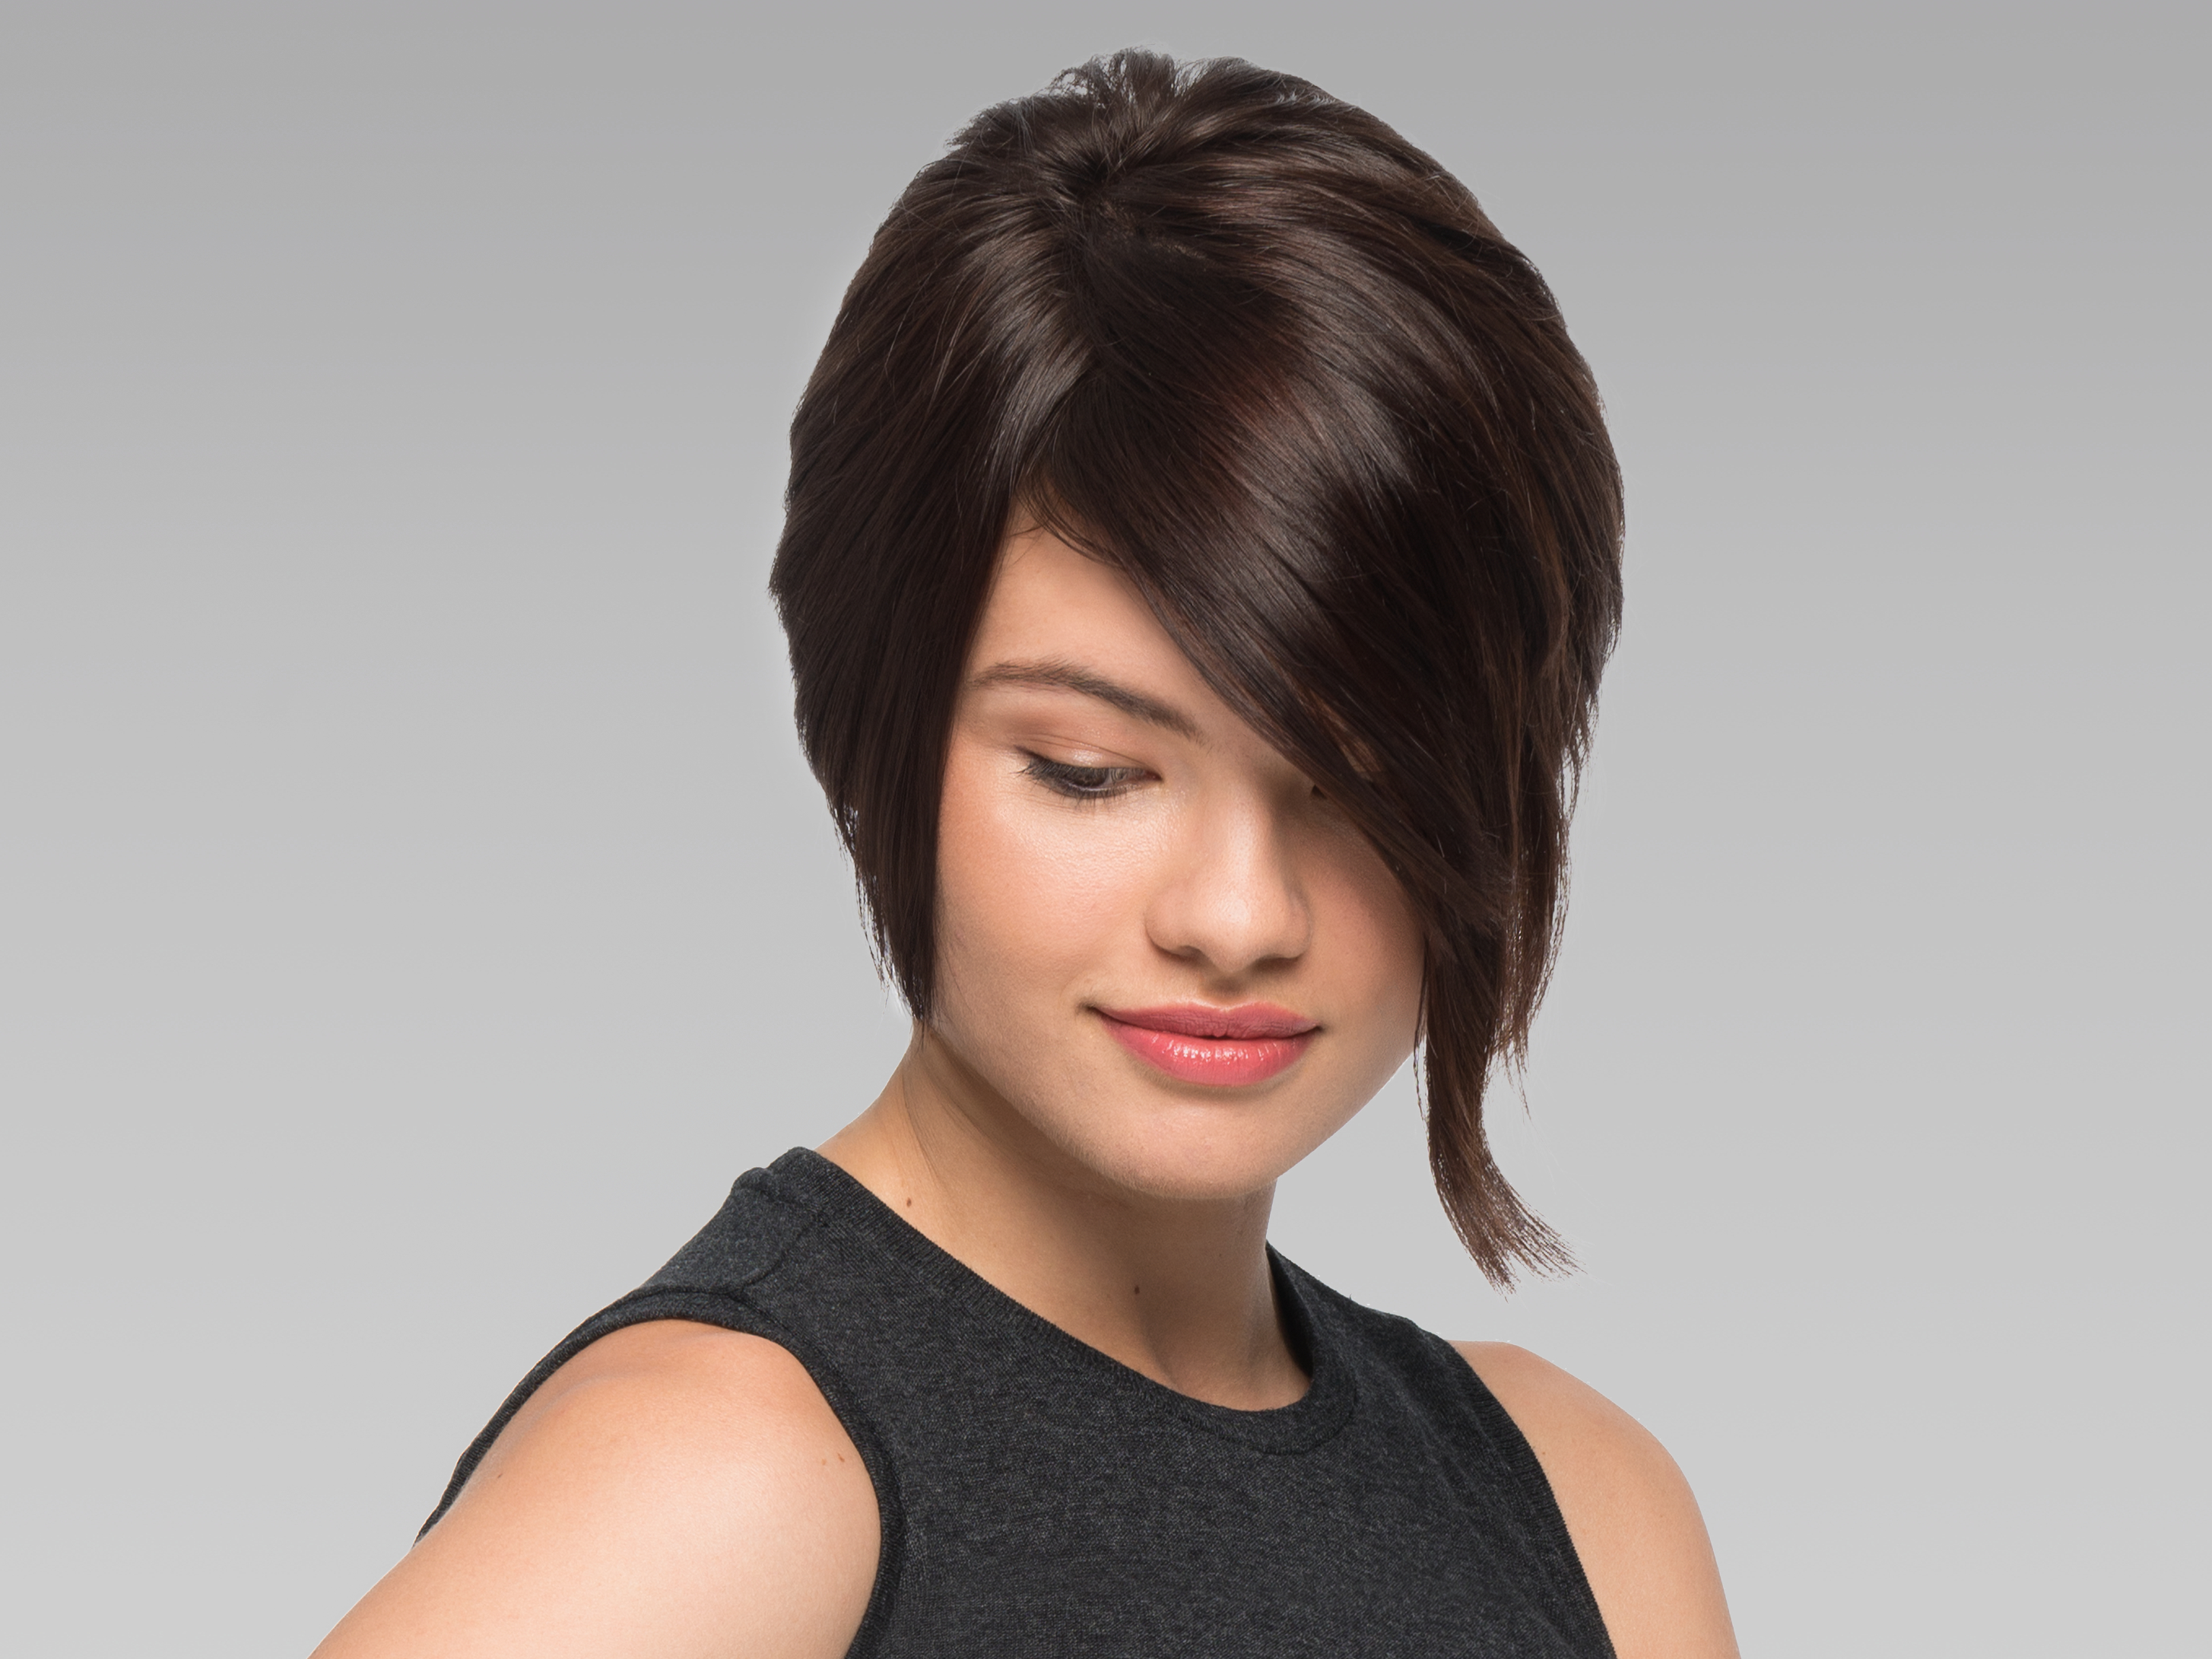 Women's Hairstyles | Supercuts Pertaining To Long Hairstyles Short Layers (View 16 of 25)